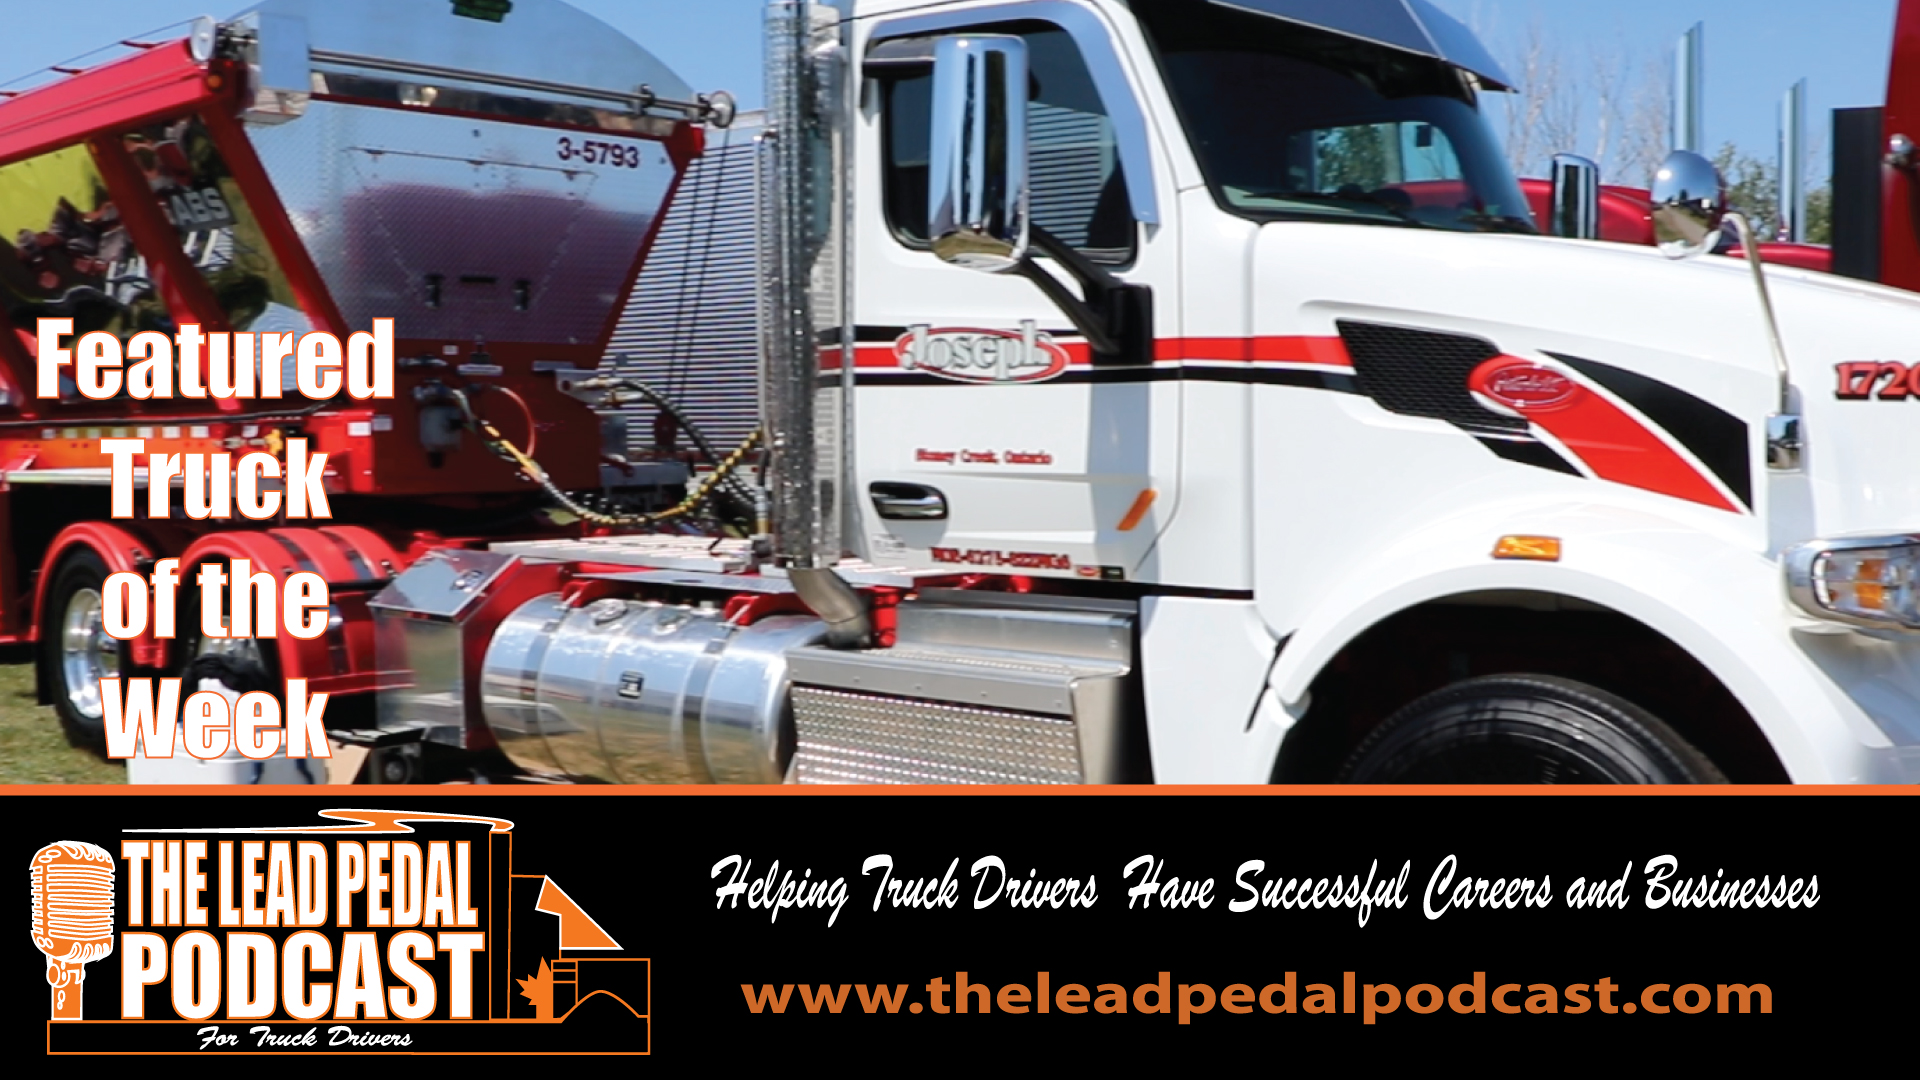 Featured Truck of the Week - 567 Stretched Peterbilt